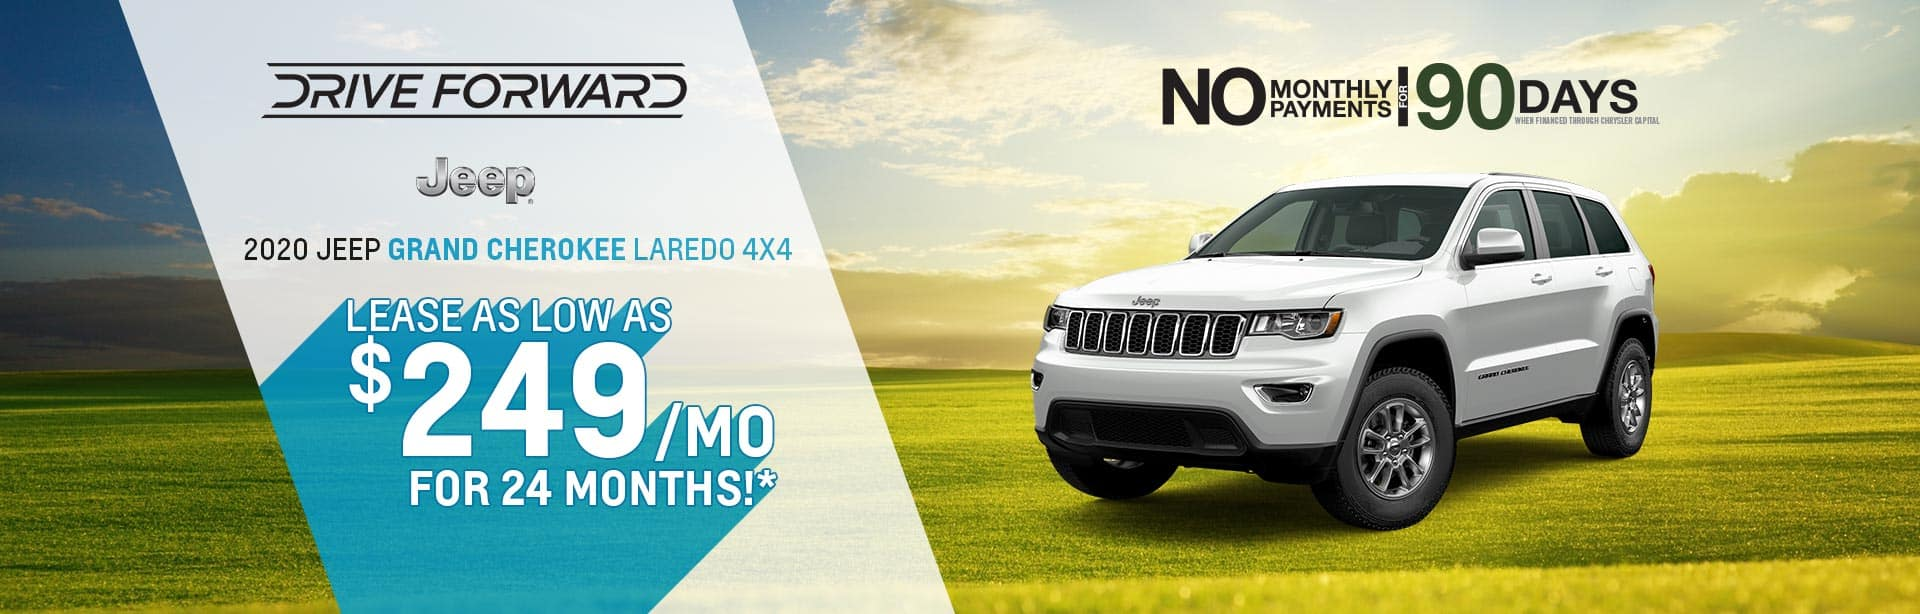 Lease a Grand Cherokee at $249 a month near Lafayette, Indiana